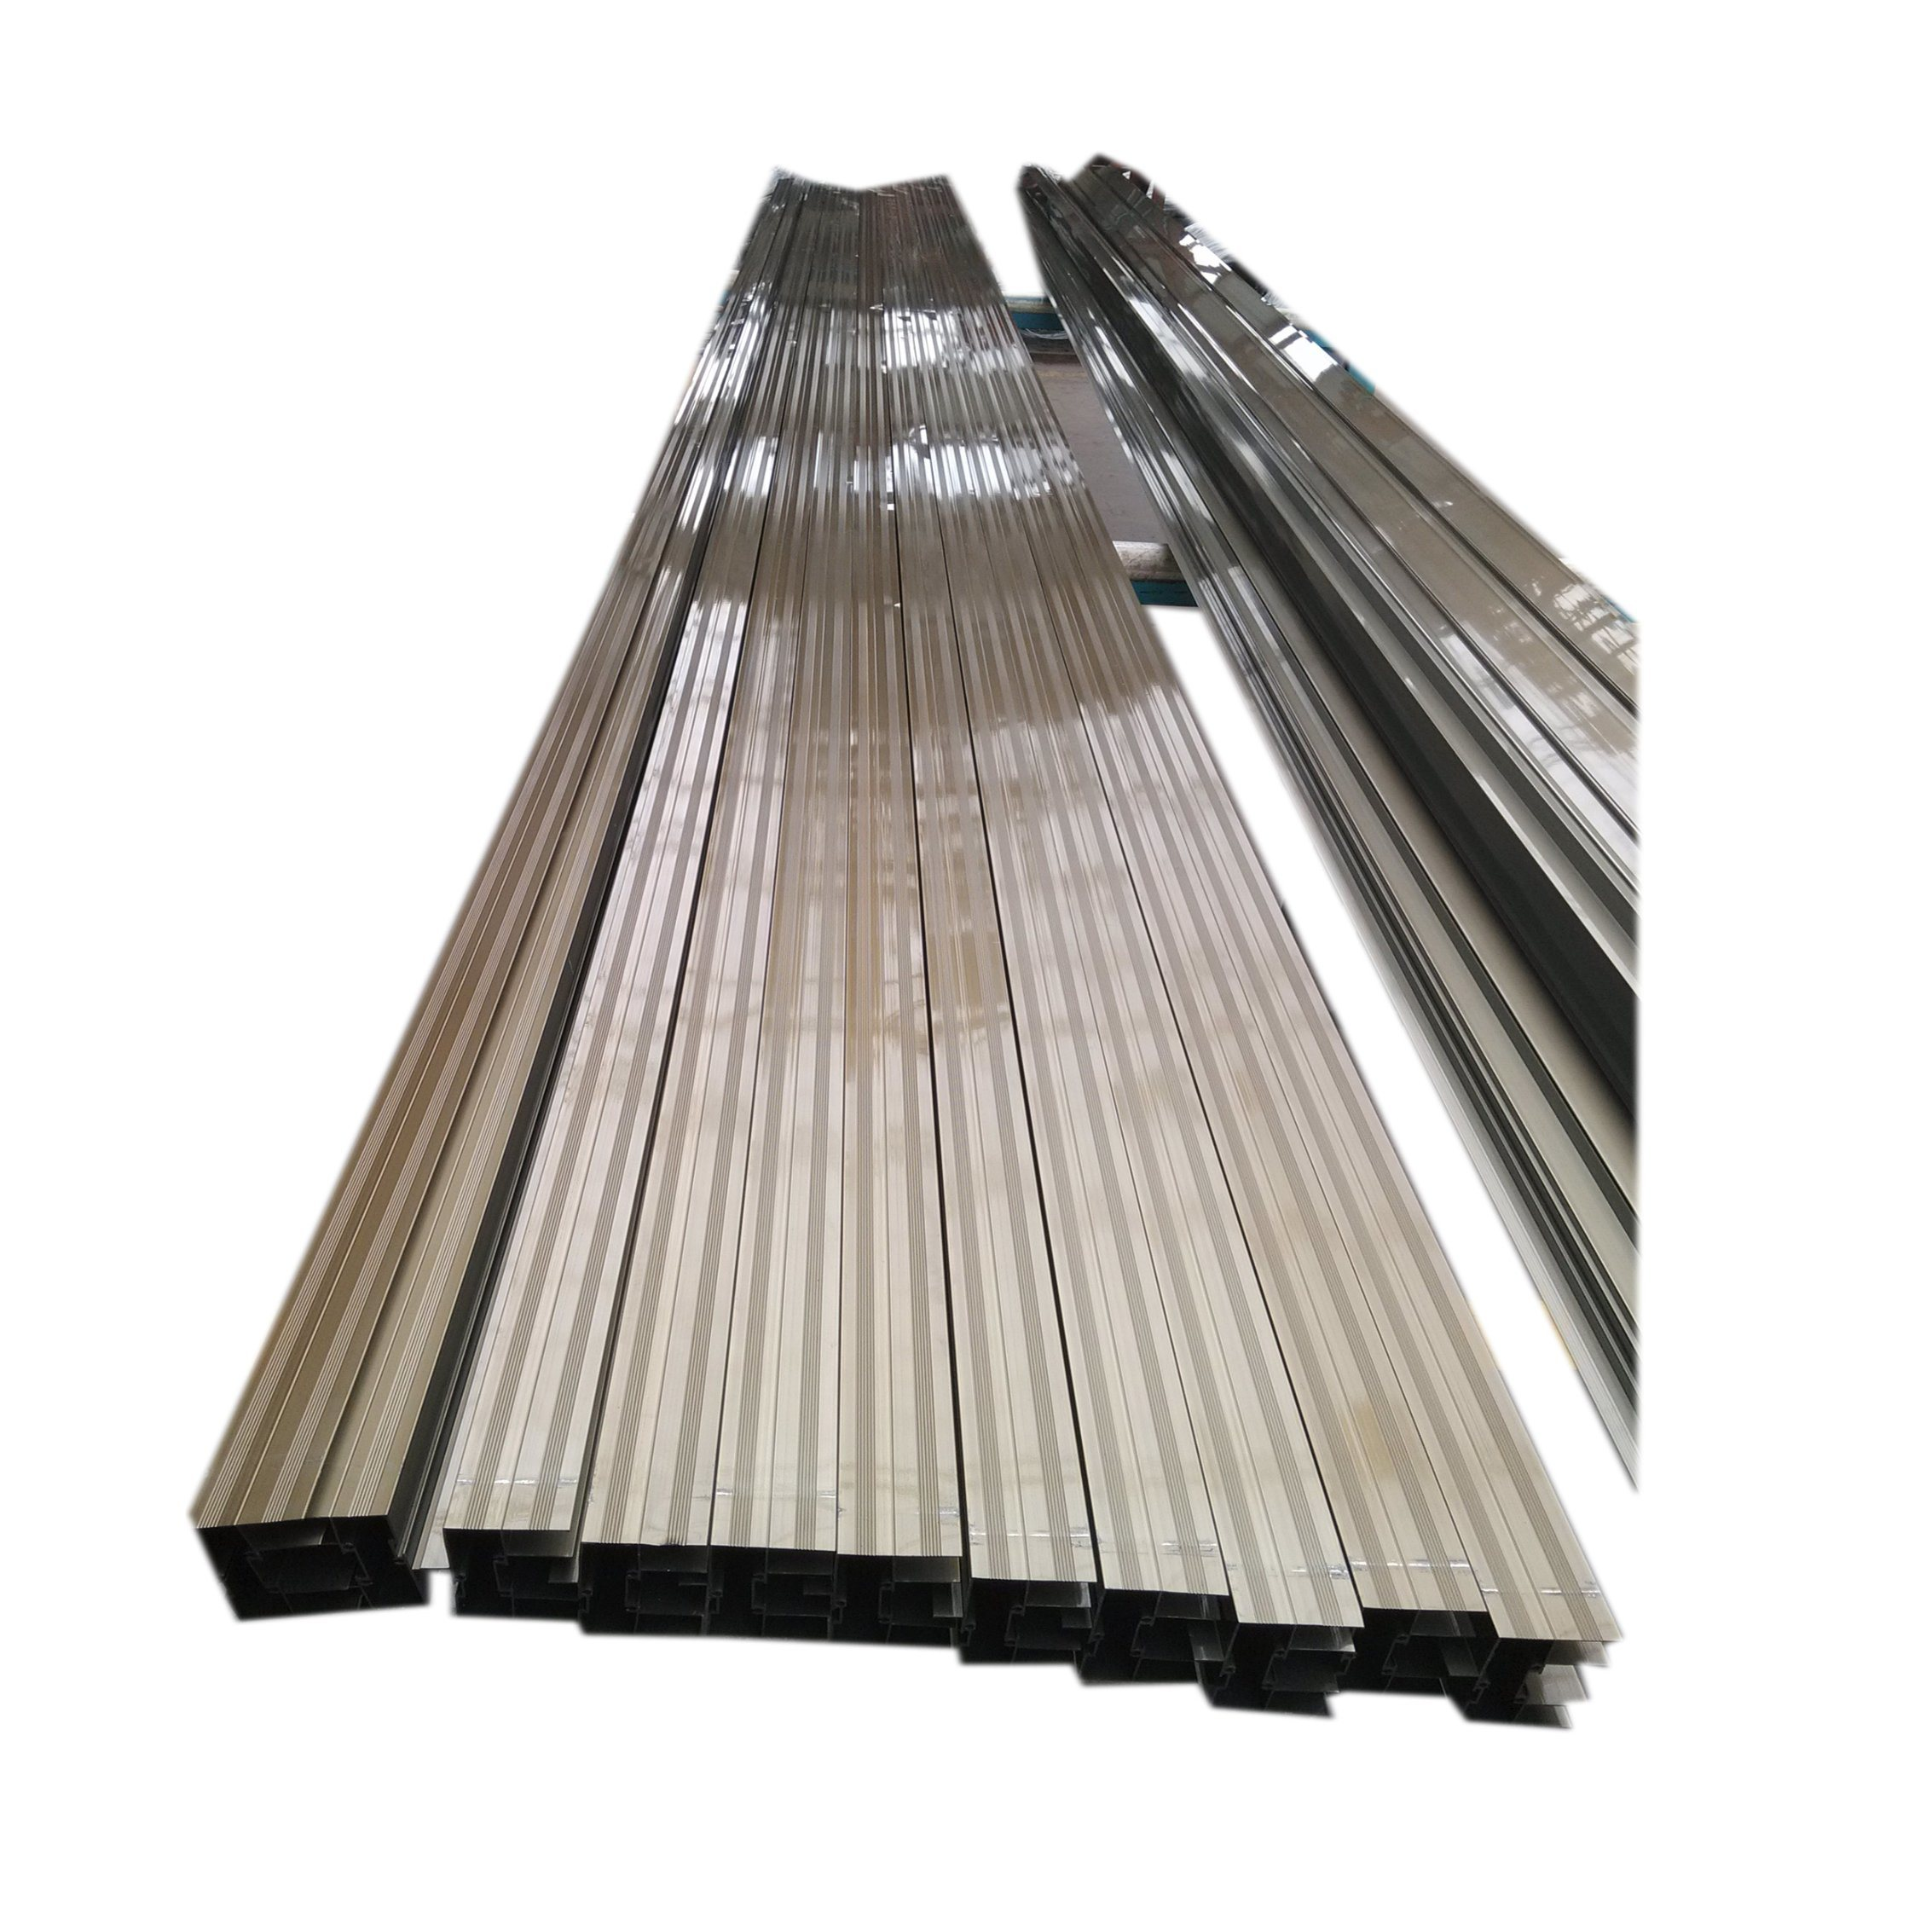 Ecectrophoretic China Sliding Casement Open Aluminium Extrusion Profile / Aluminum Profile for Window Door Industrial